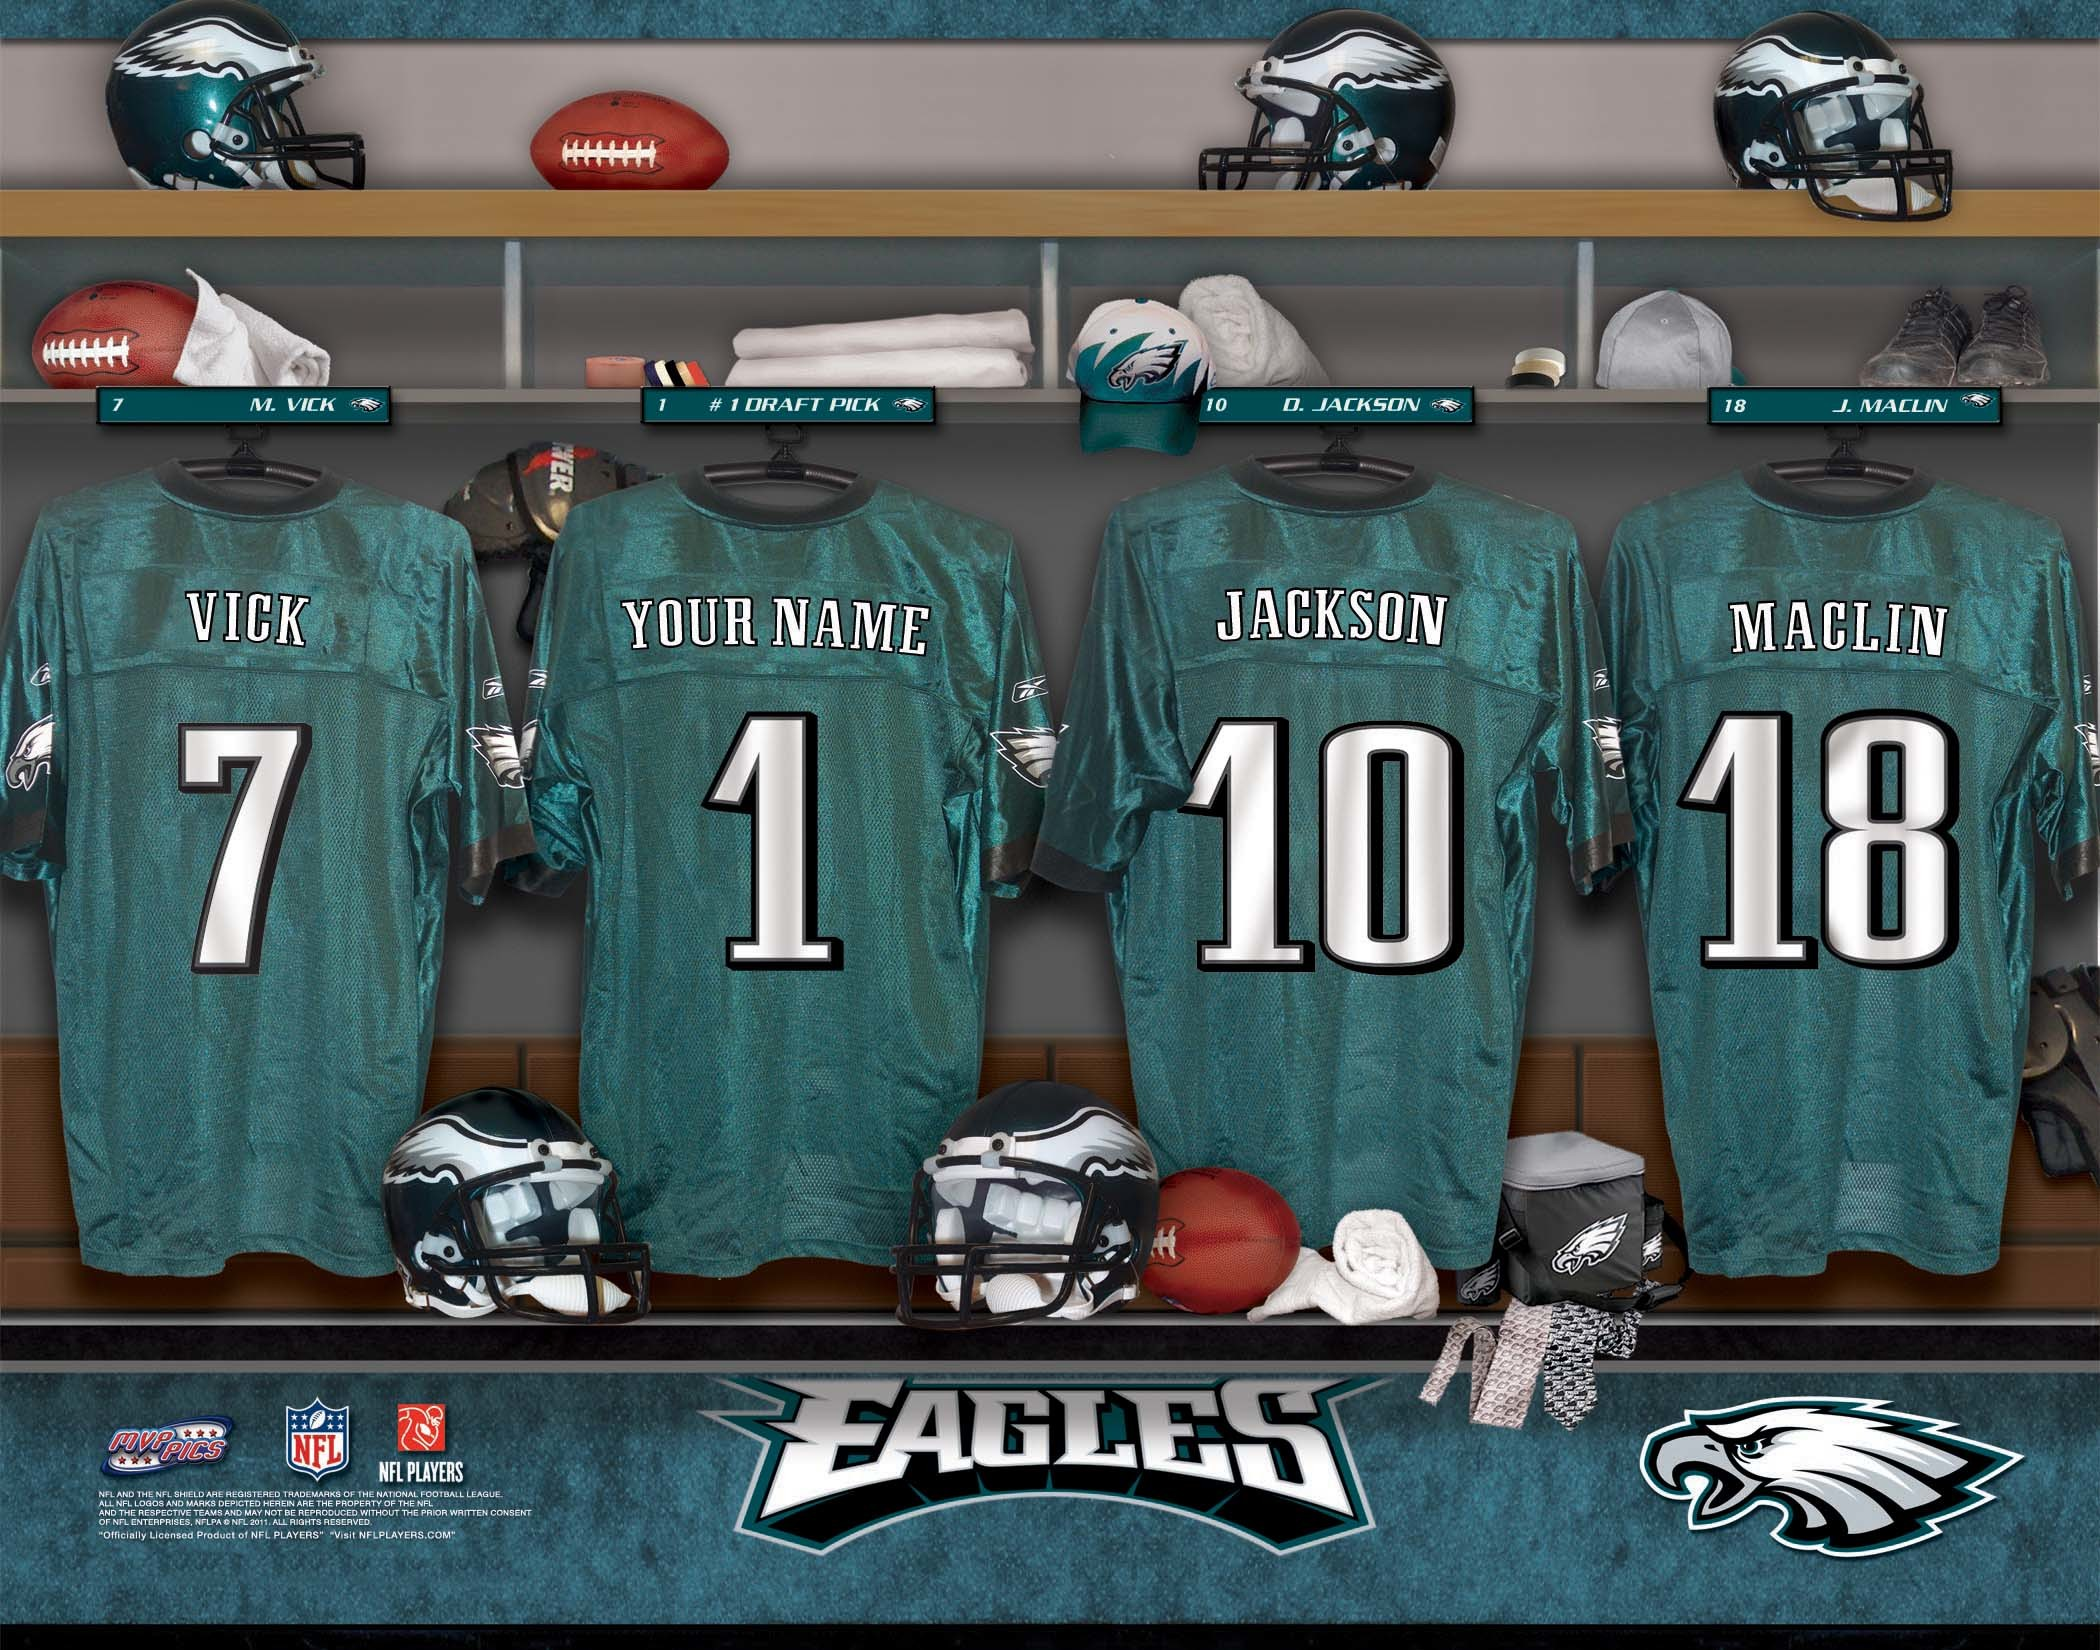 2100x1650 Philadelphia Eagles 2013 HD Desktop Wallpaper